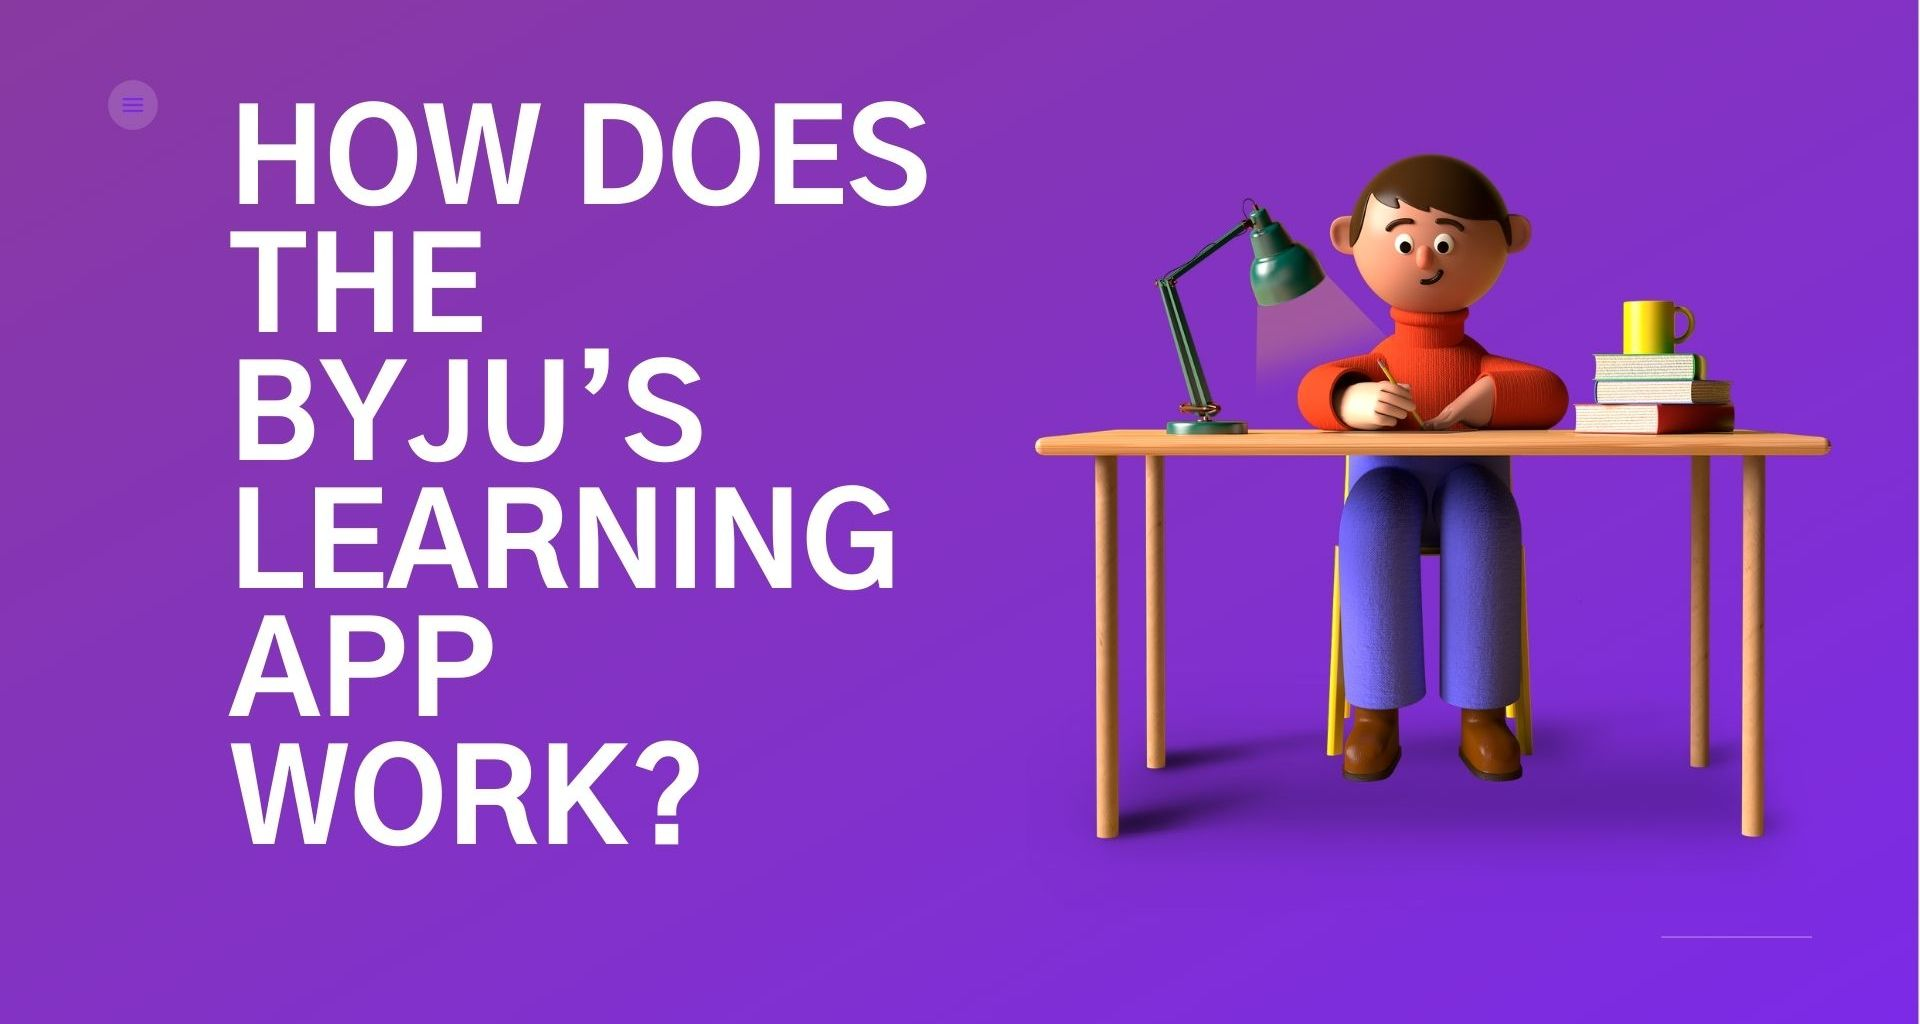 HOW DOES THE BYJU'S LEARNING APP WORK?